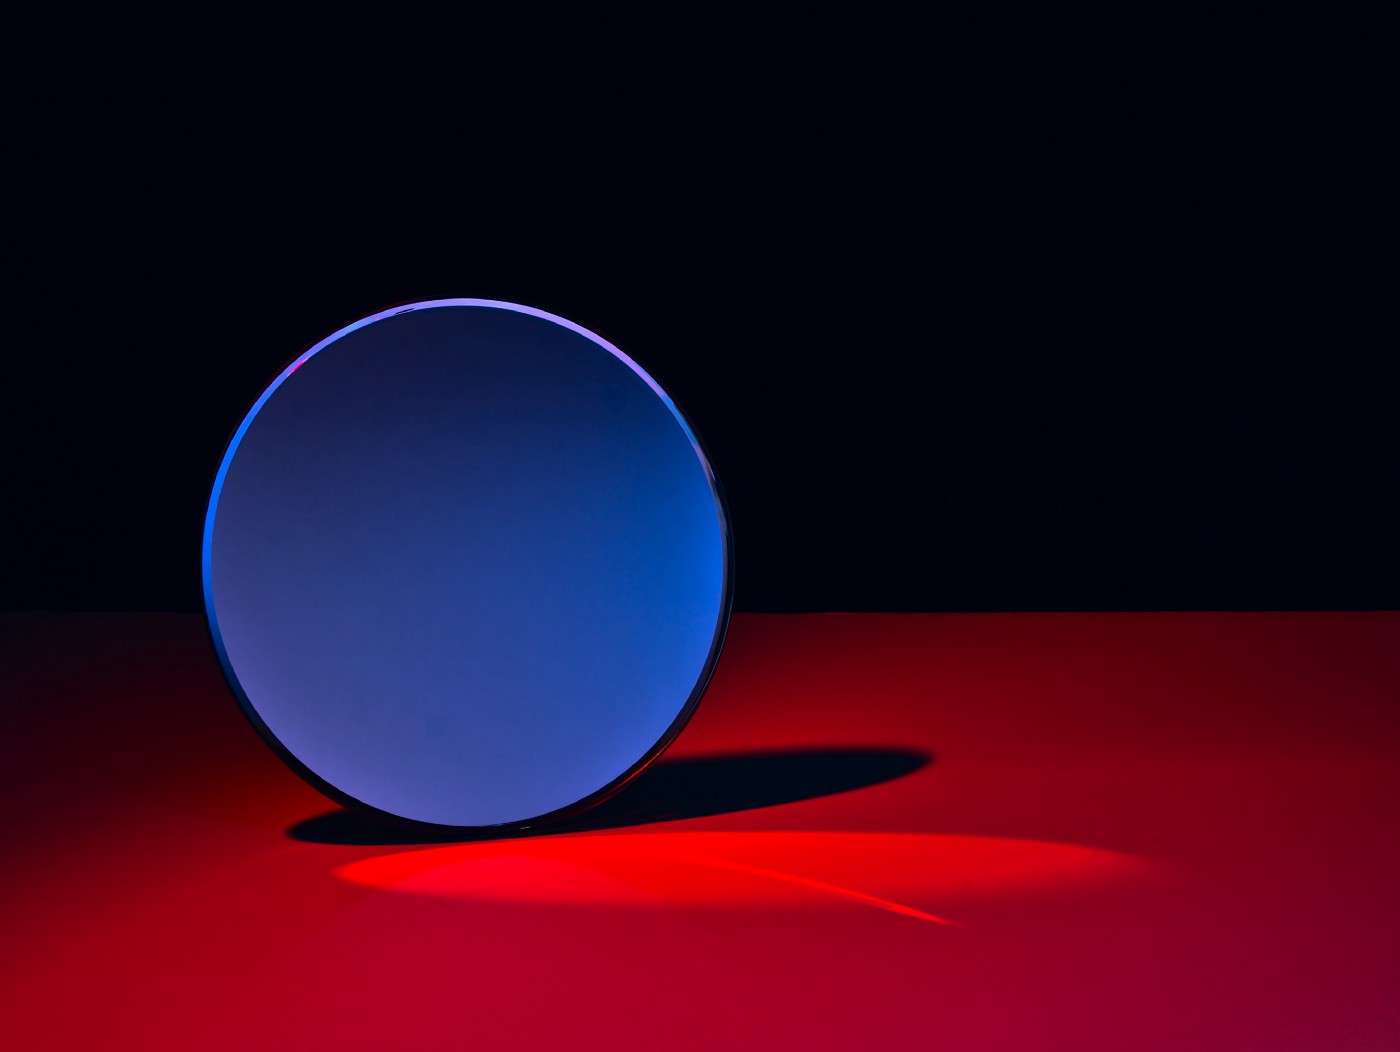 decorative: blue disc standing edgewise on a red surface against a black background